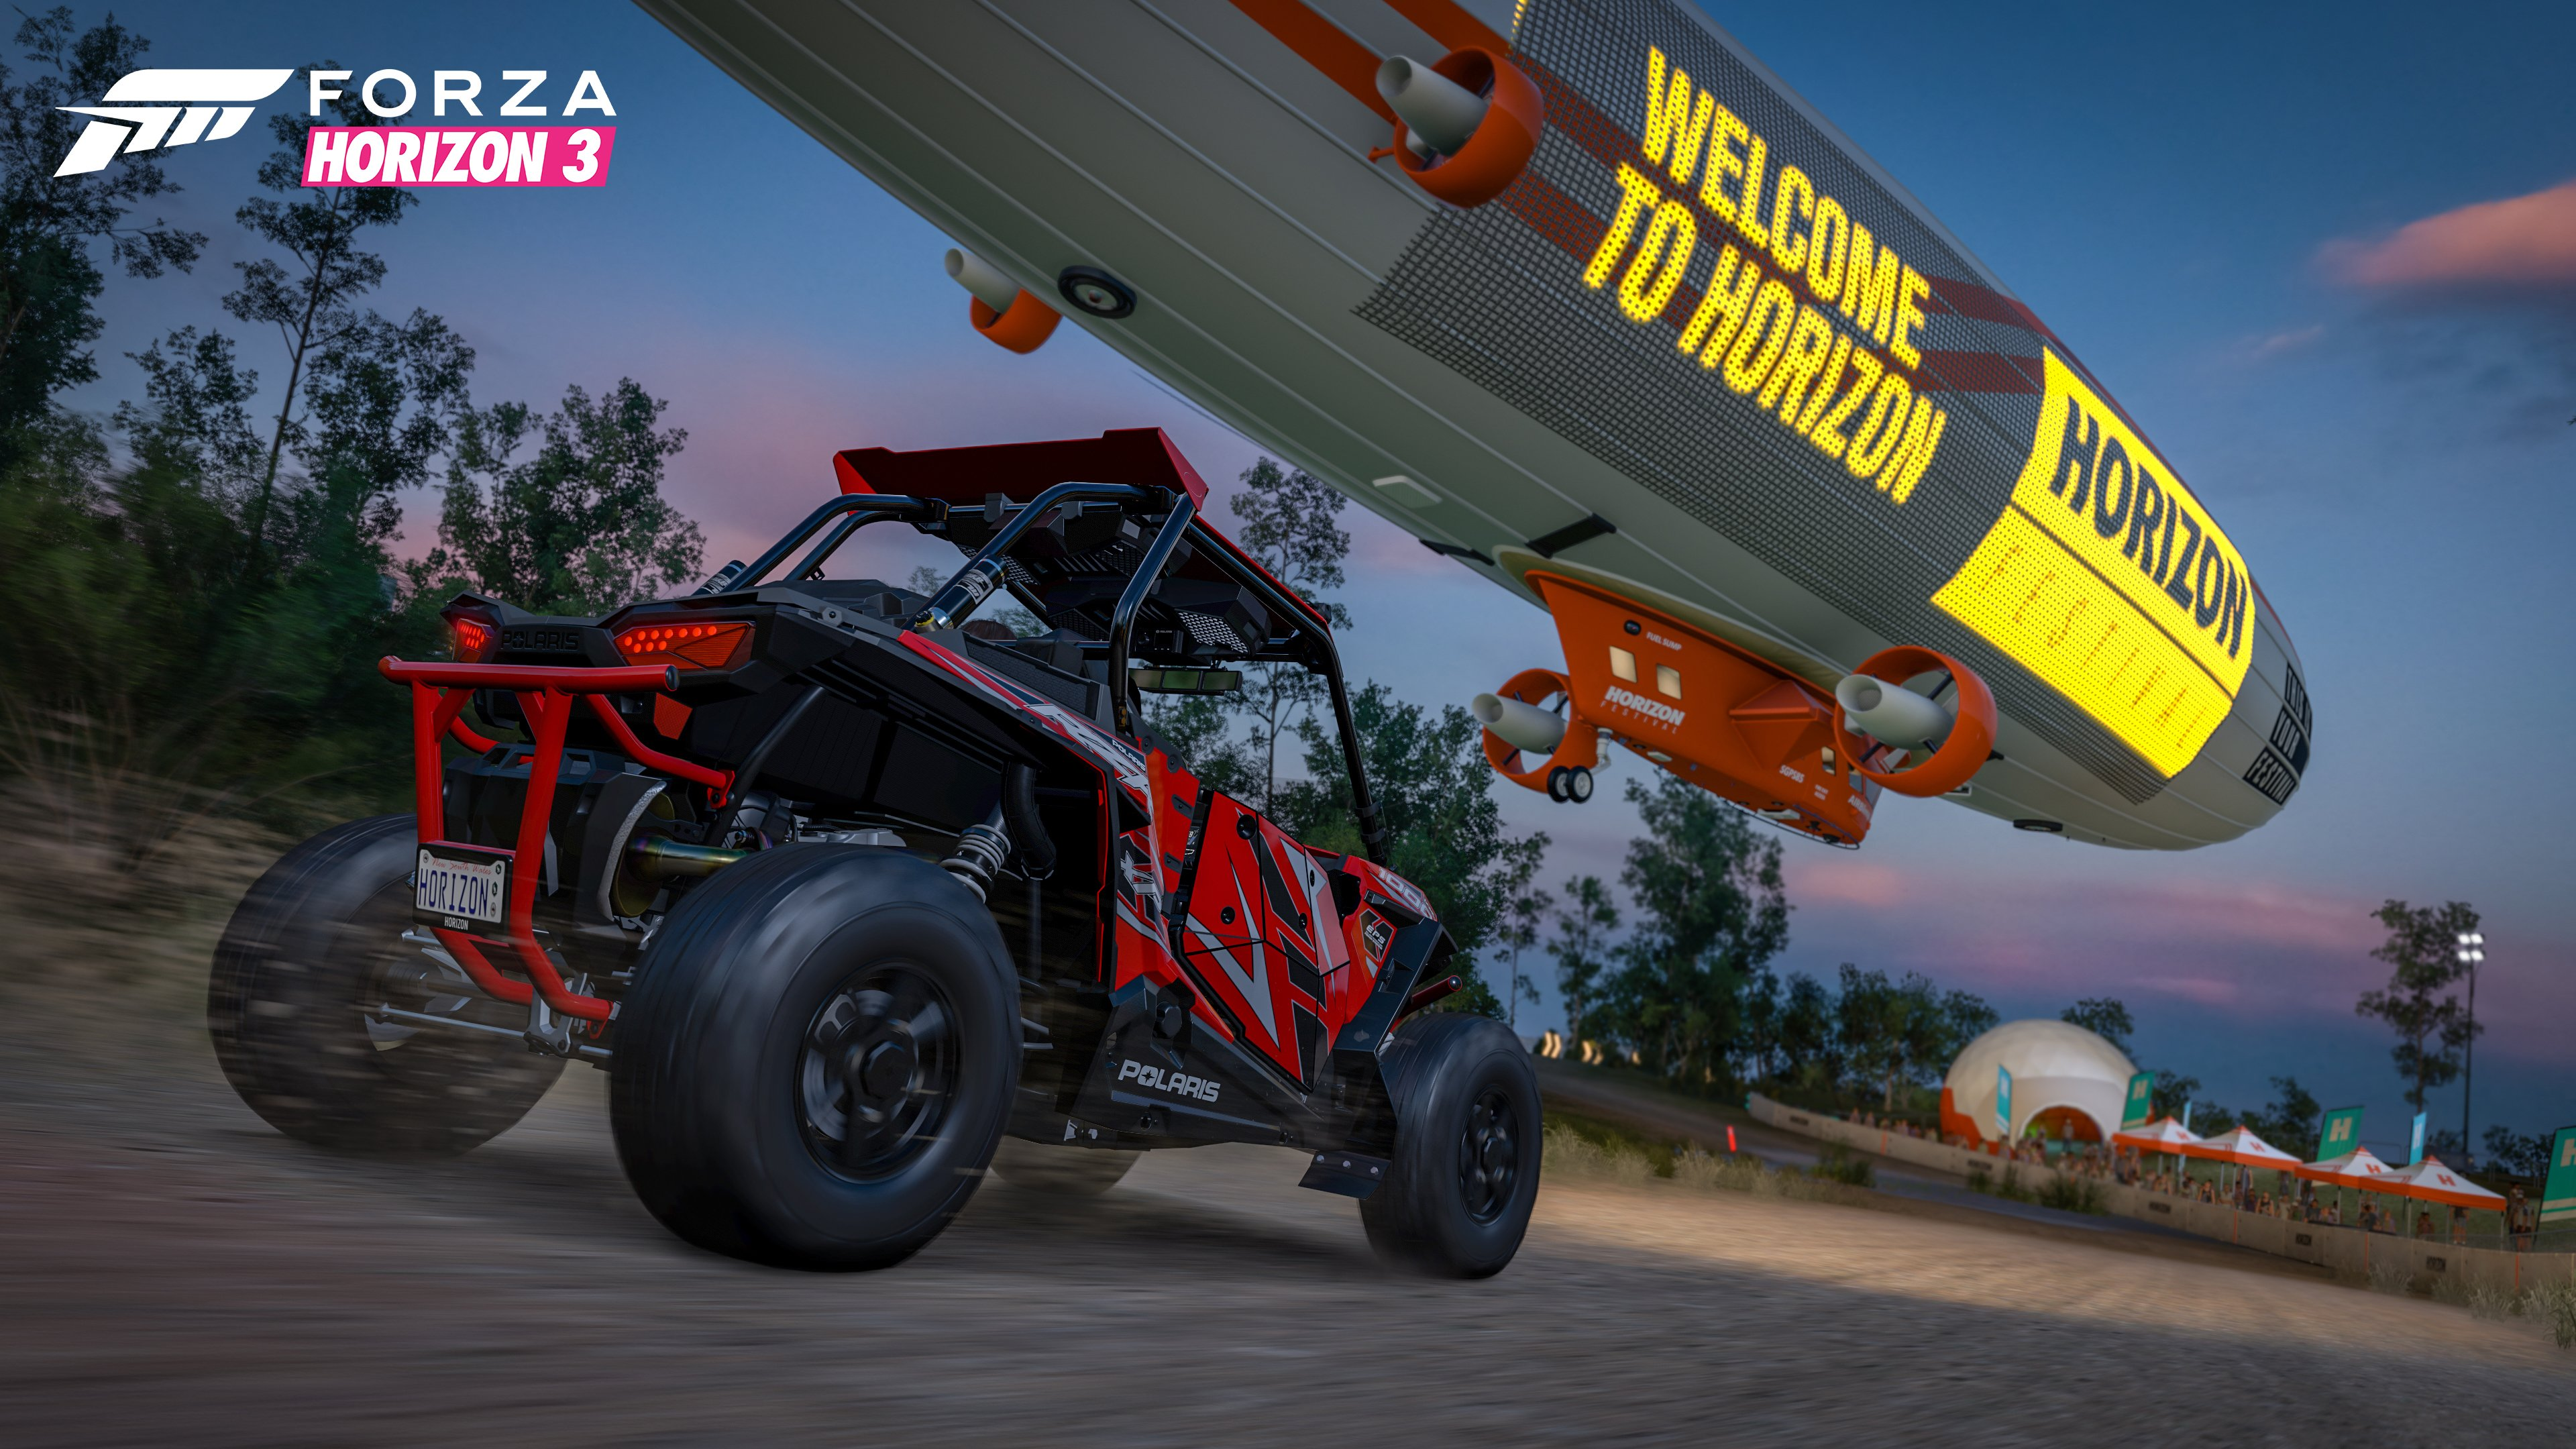 forzahorizon3_review_06_blimprace_wm